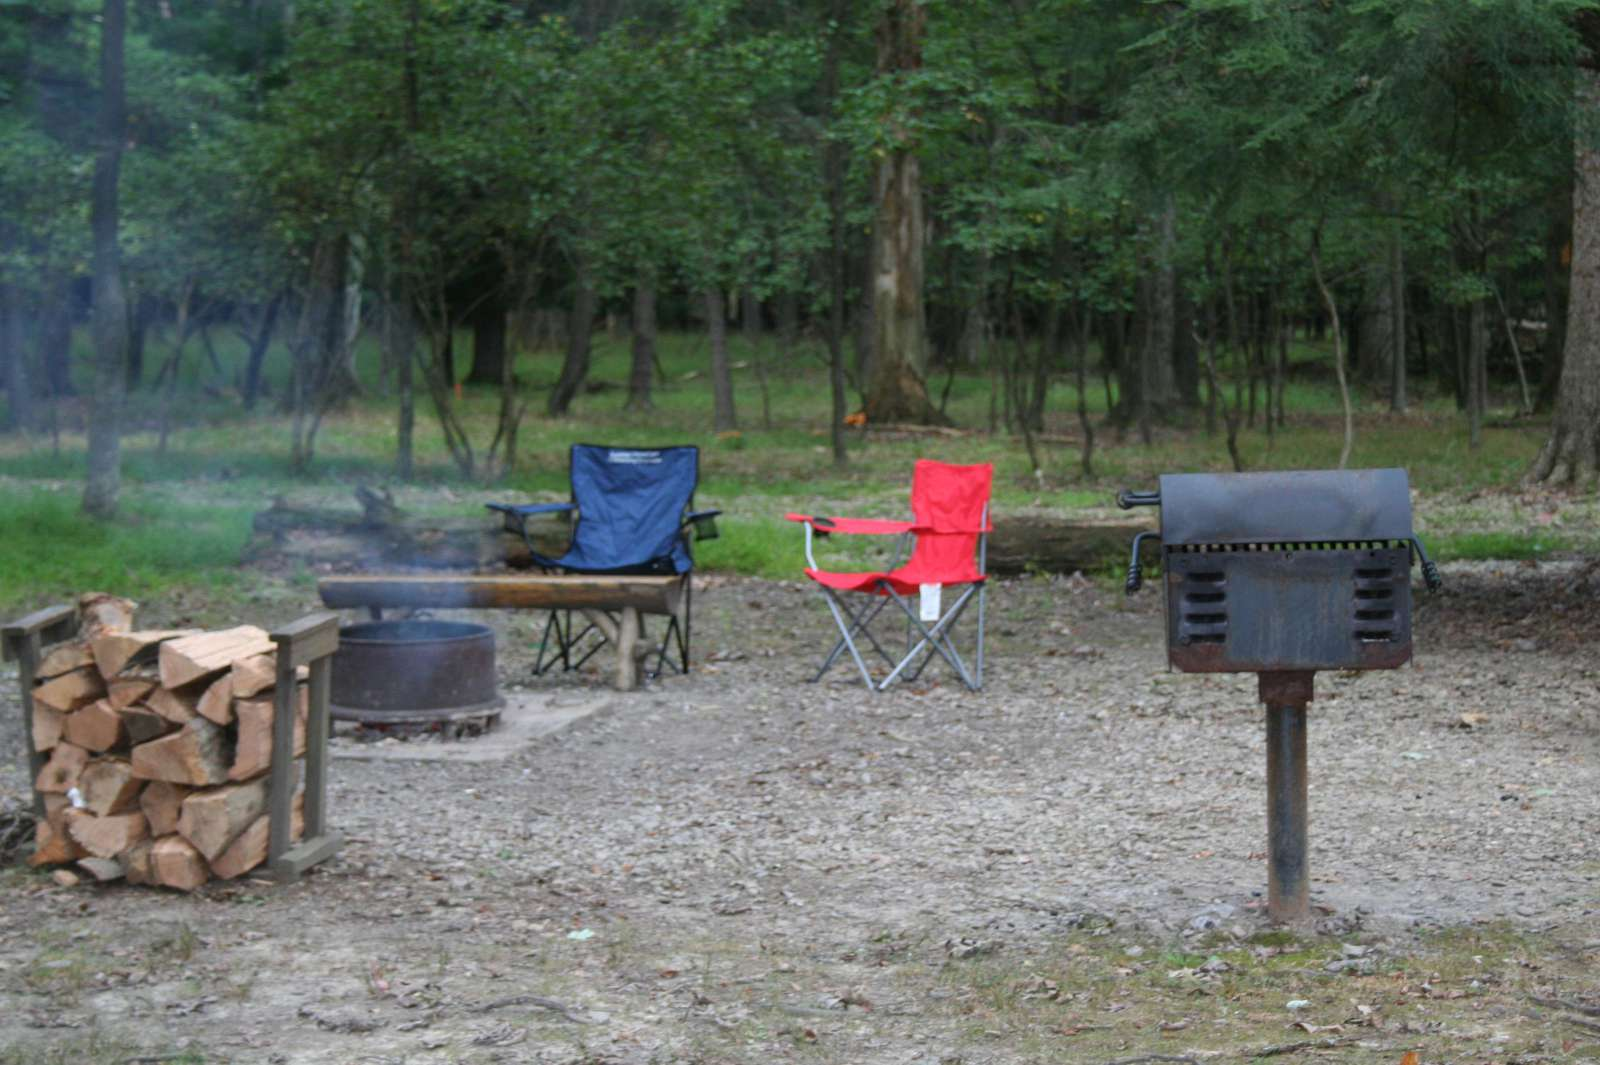 Douglas Fir Fire Pit, Charcoal Grill and Picnic Area